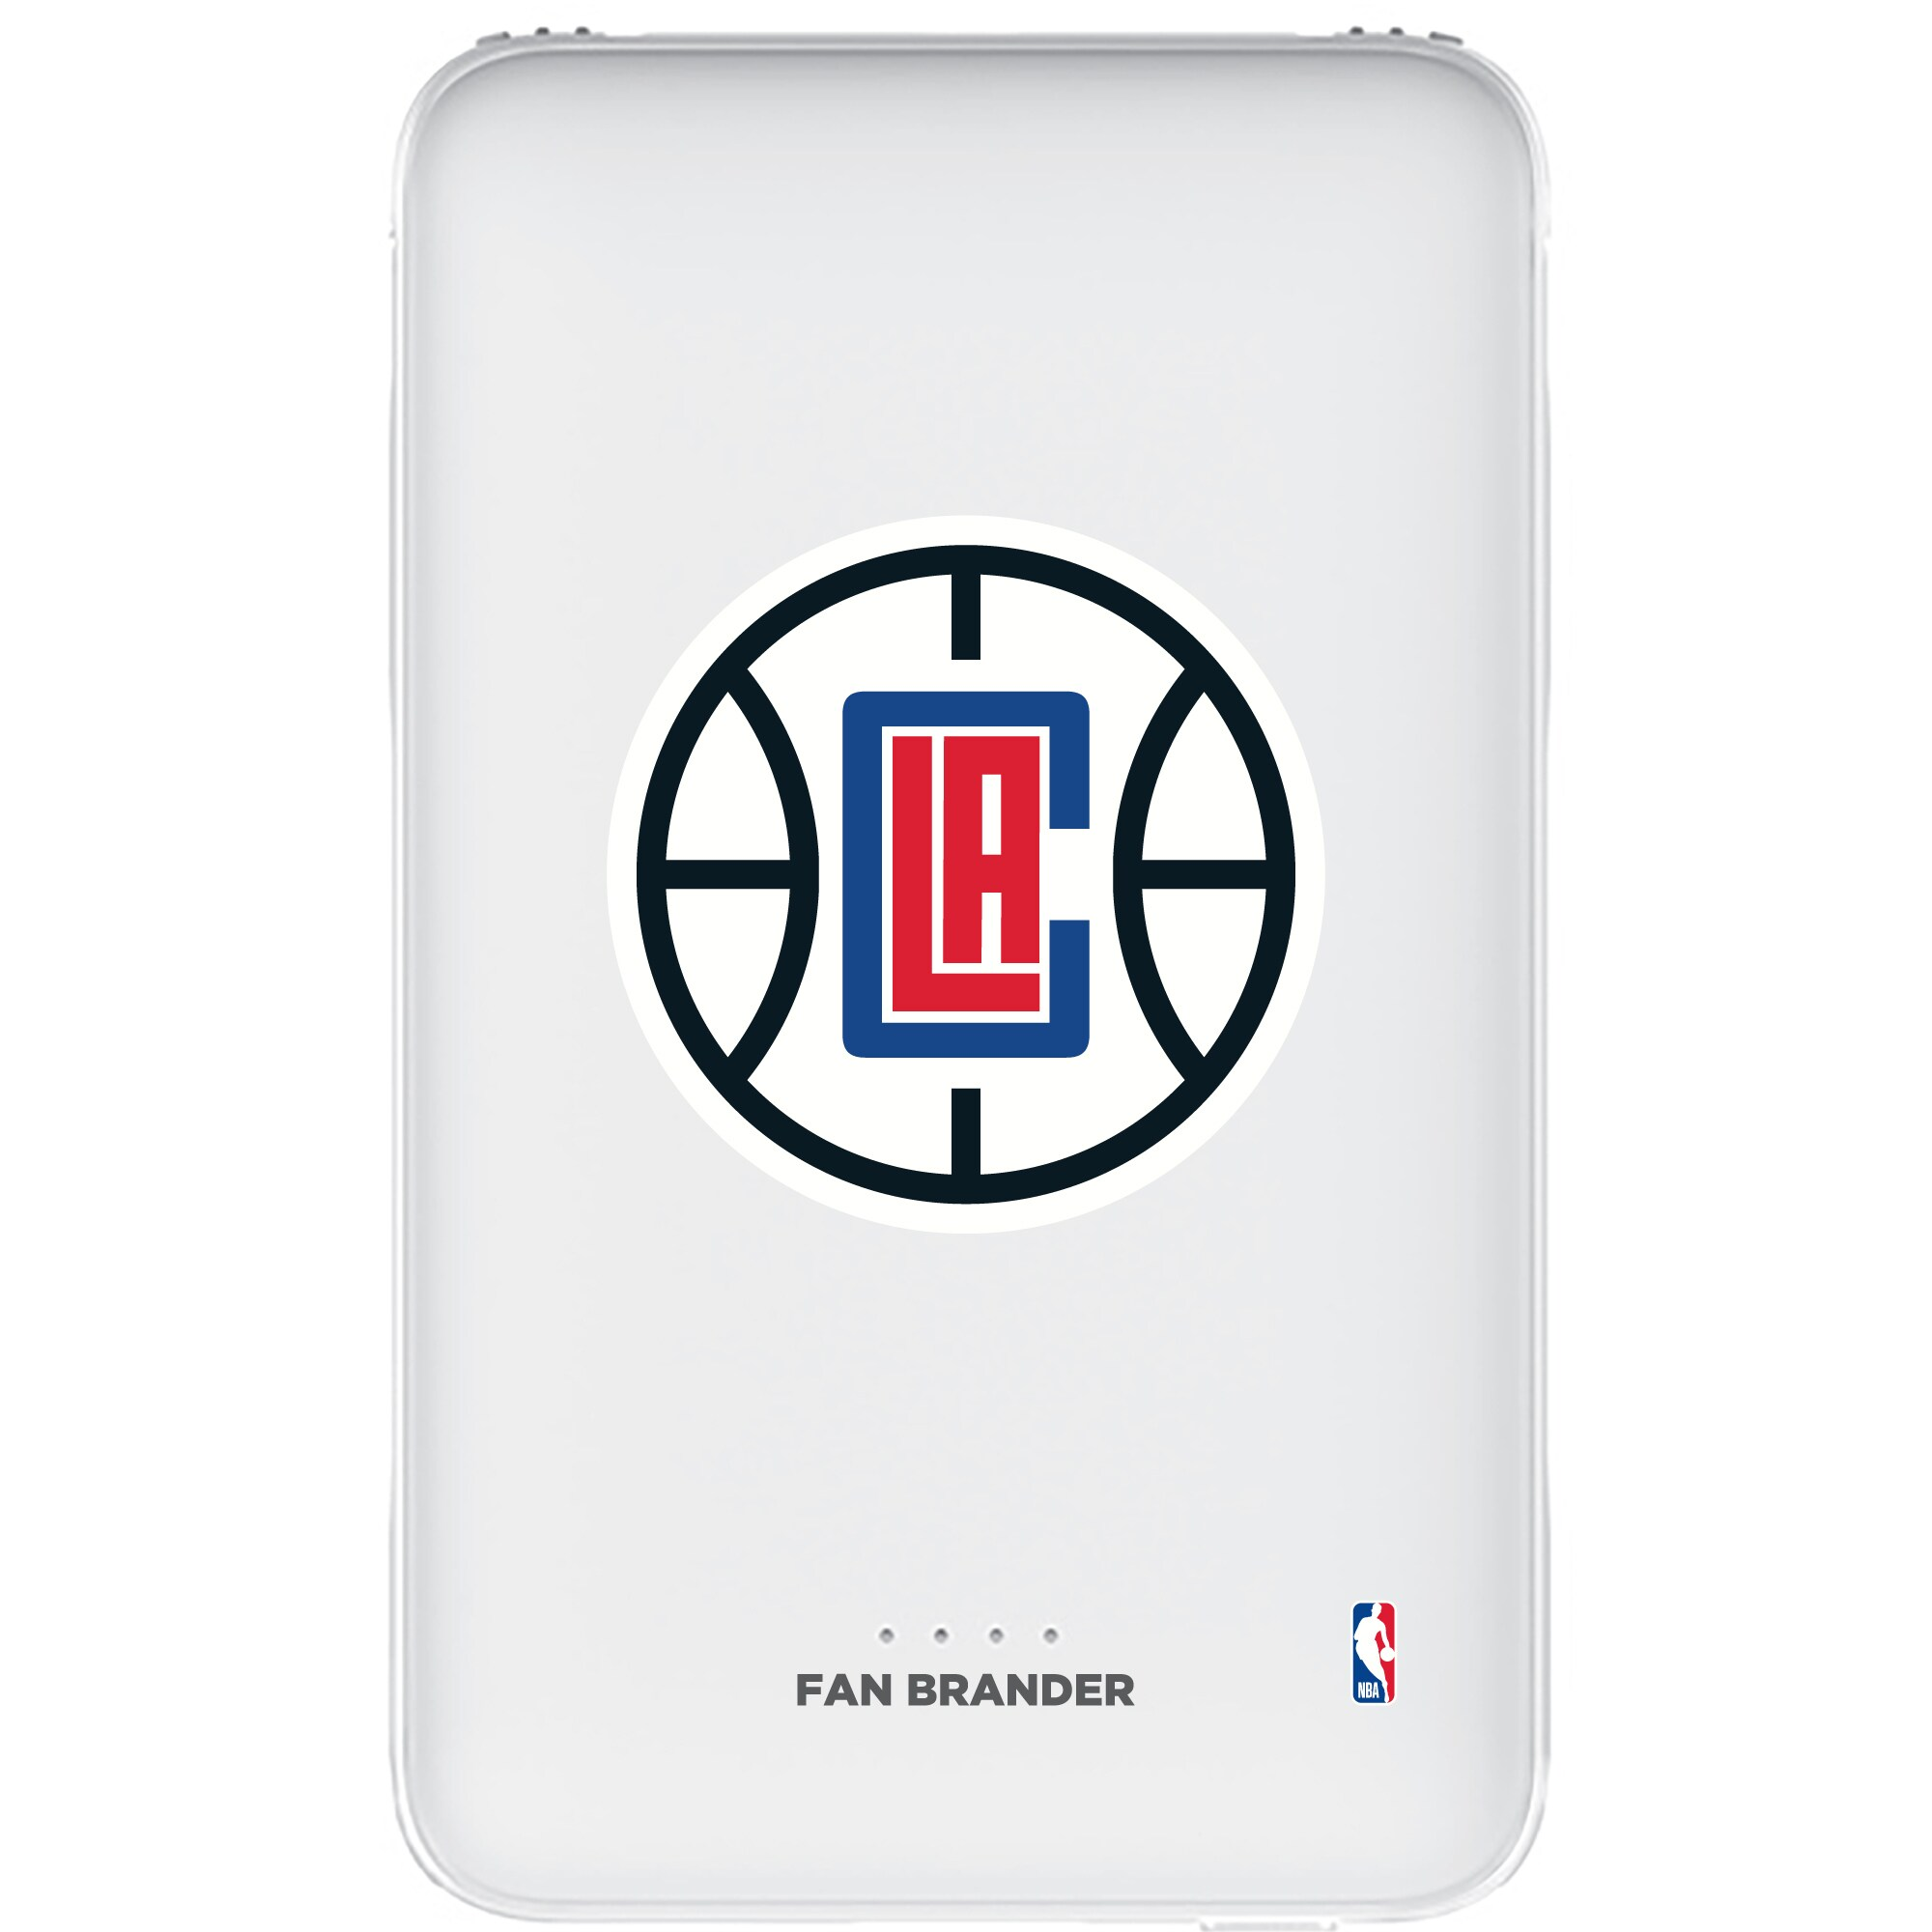 LA Clippers 5000mAh Portable Power Bank - White